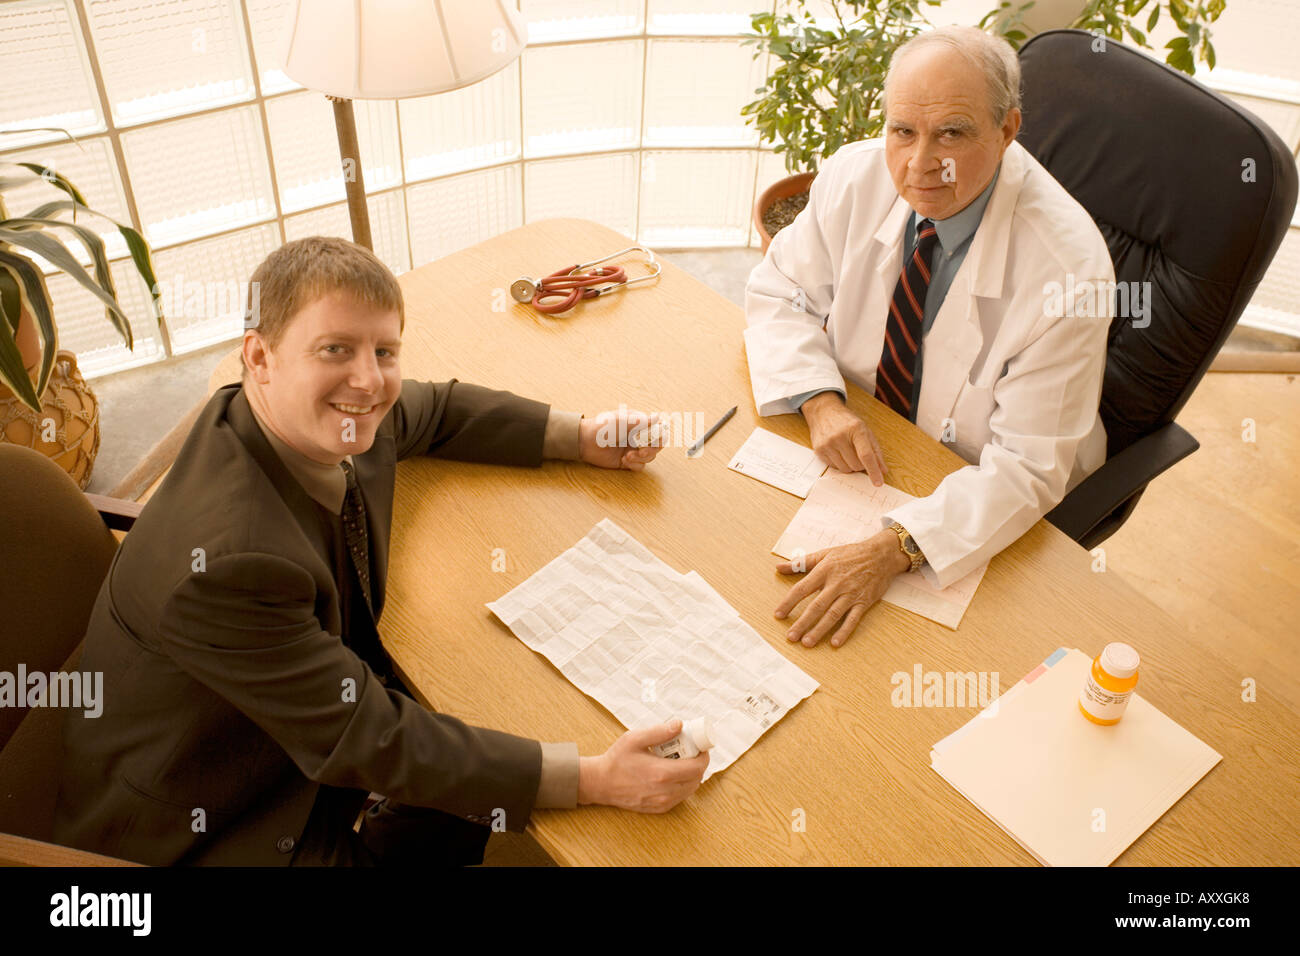 Doctor Meets With Drug Rep Pharmaceutical Representative Stock